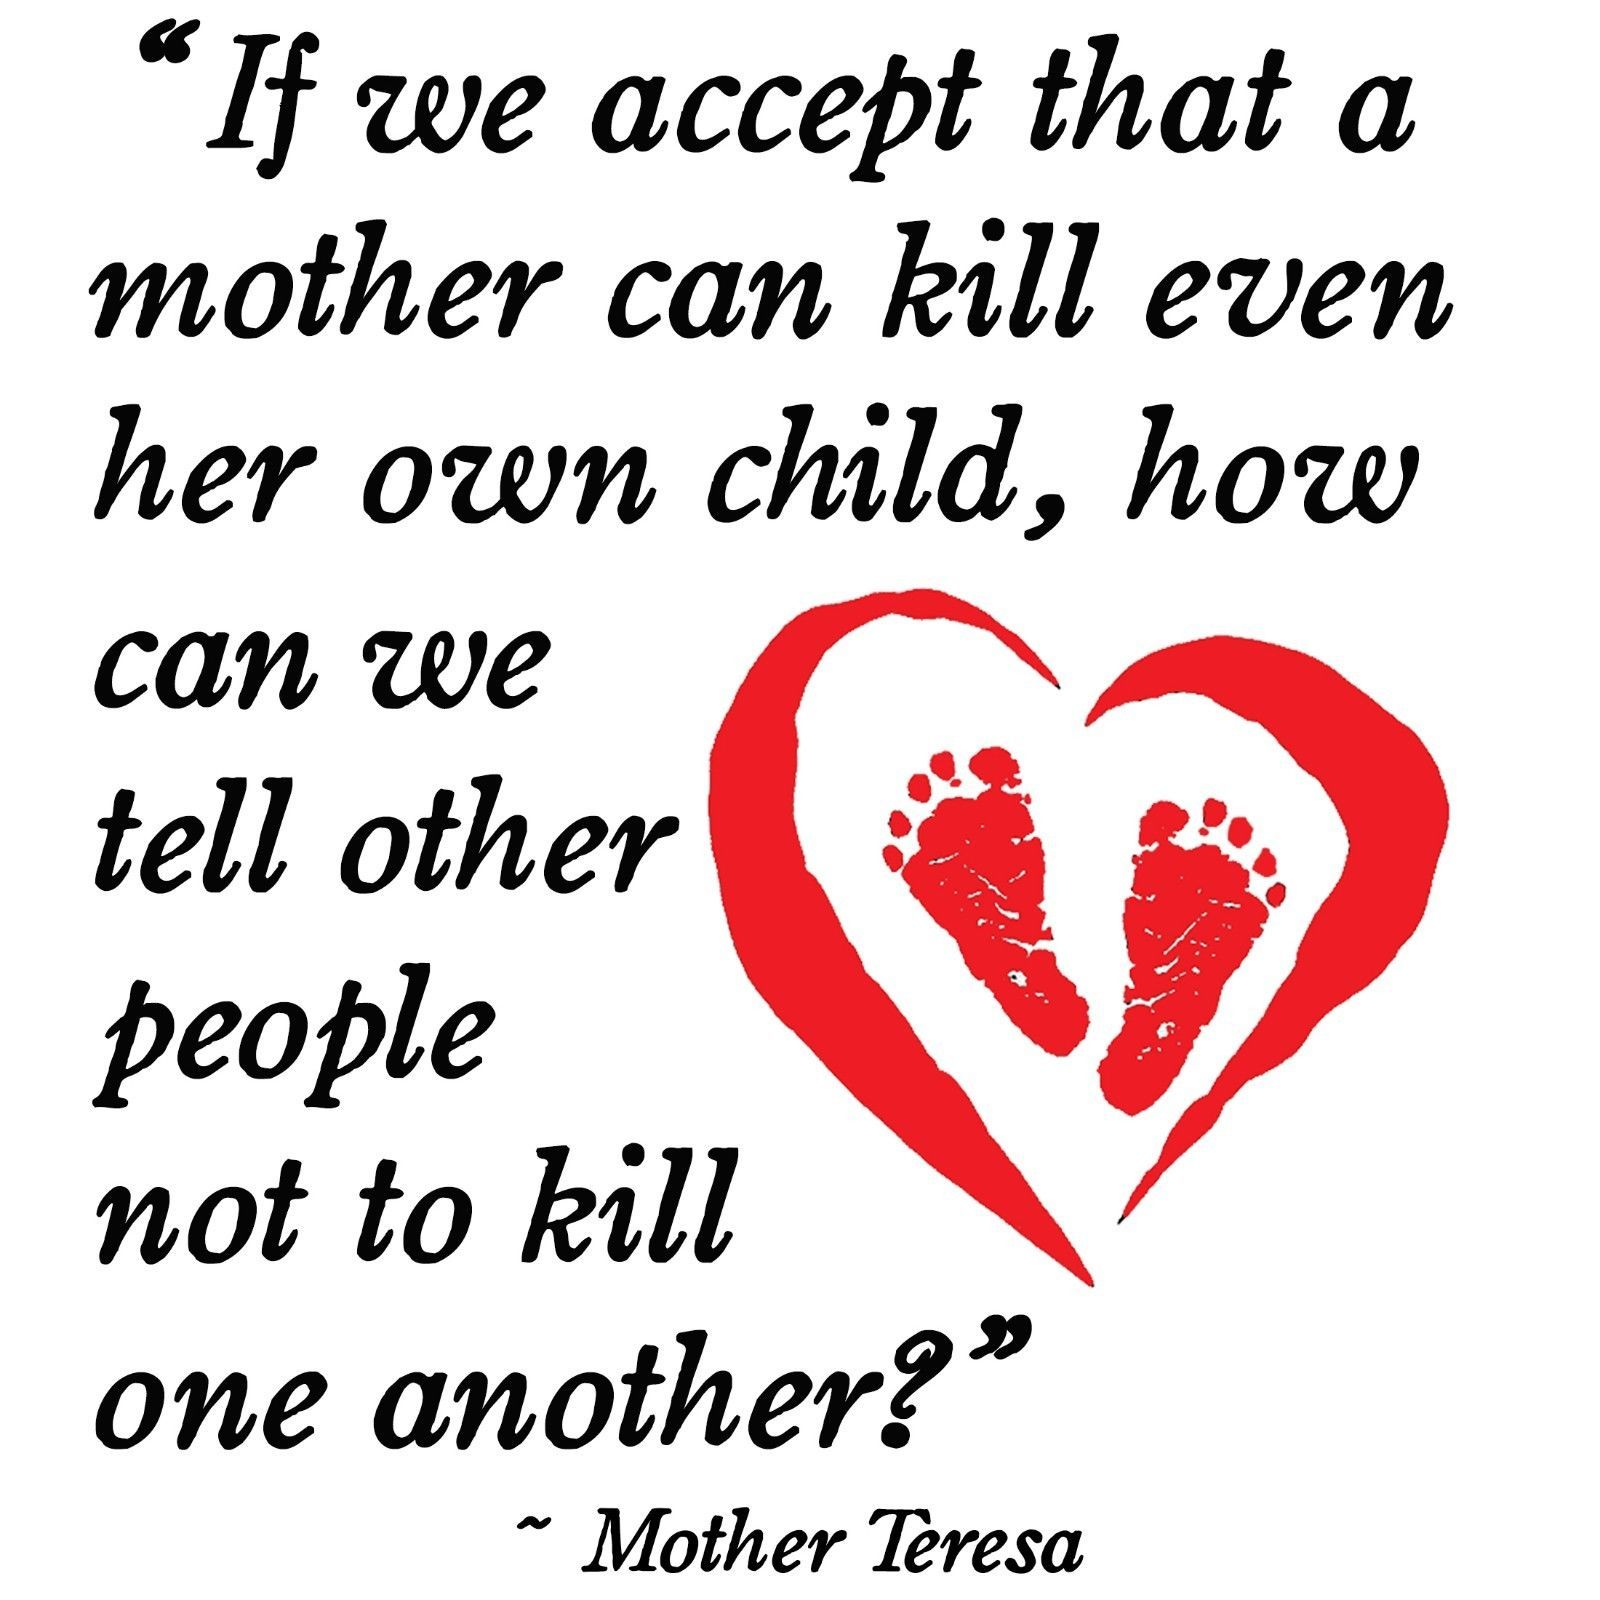 Abortion Quotes Anti Hillary Mother Teresa Abortion Quote Conservative Political